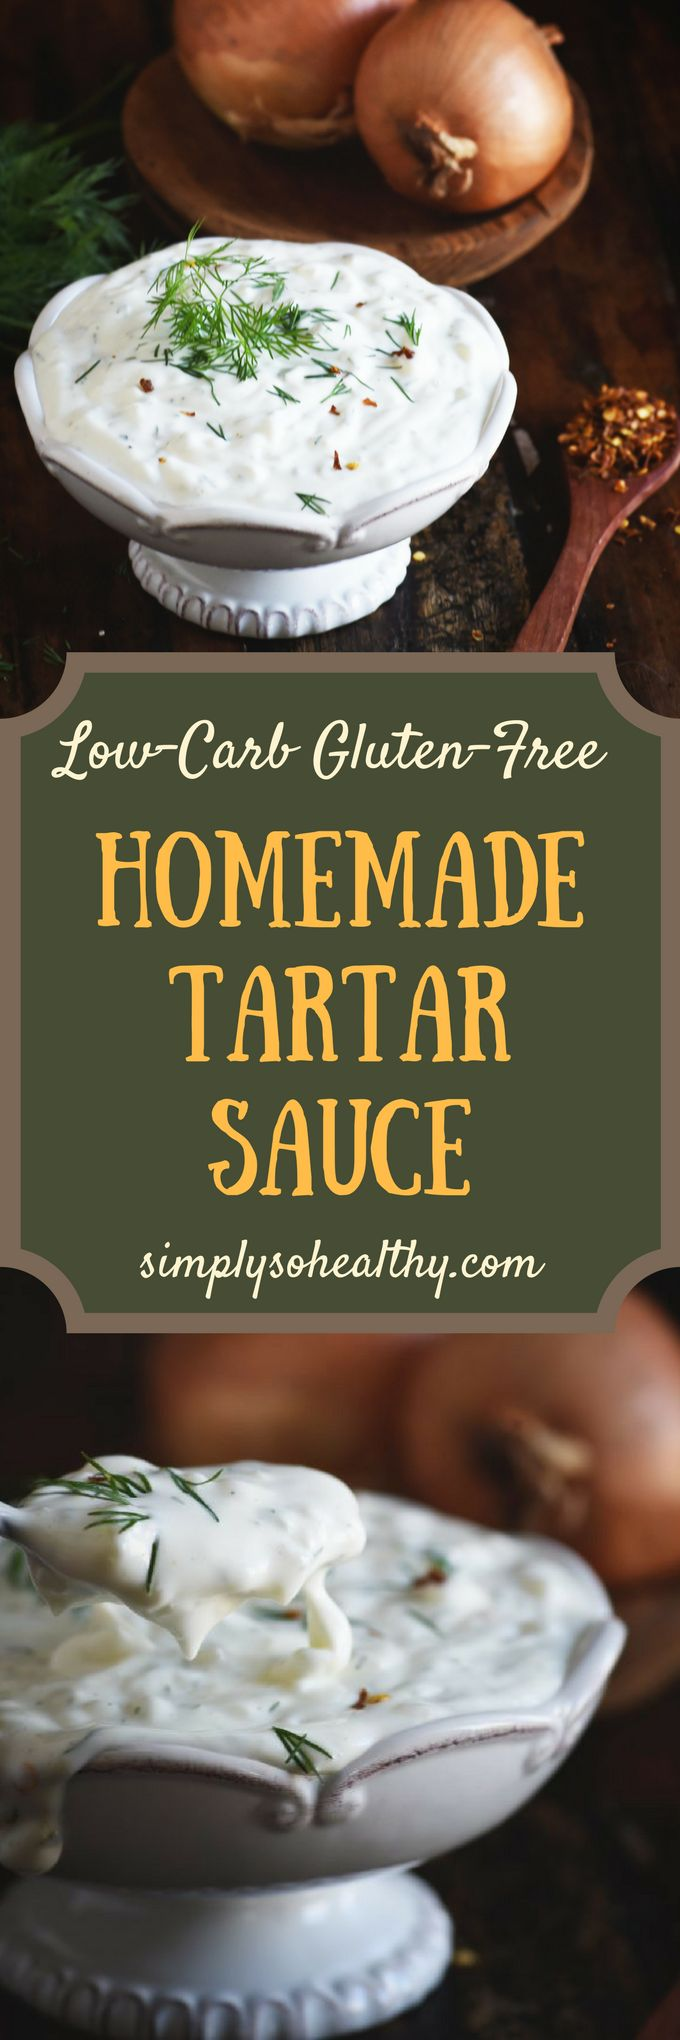 After you make this Homemade Tartar Sauce Recipe, you'll never eat store-bought tartar sauce again! This super easy recipe can be part of a low-carb, keto, gluten-free, dairy-free, grain-free, diabetic, or Whole-30 diet.